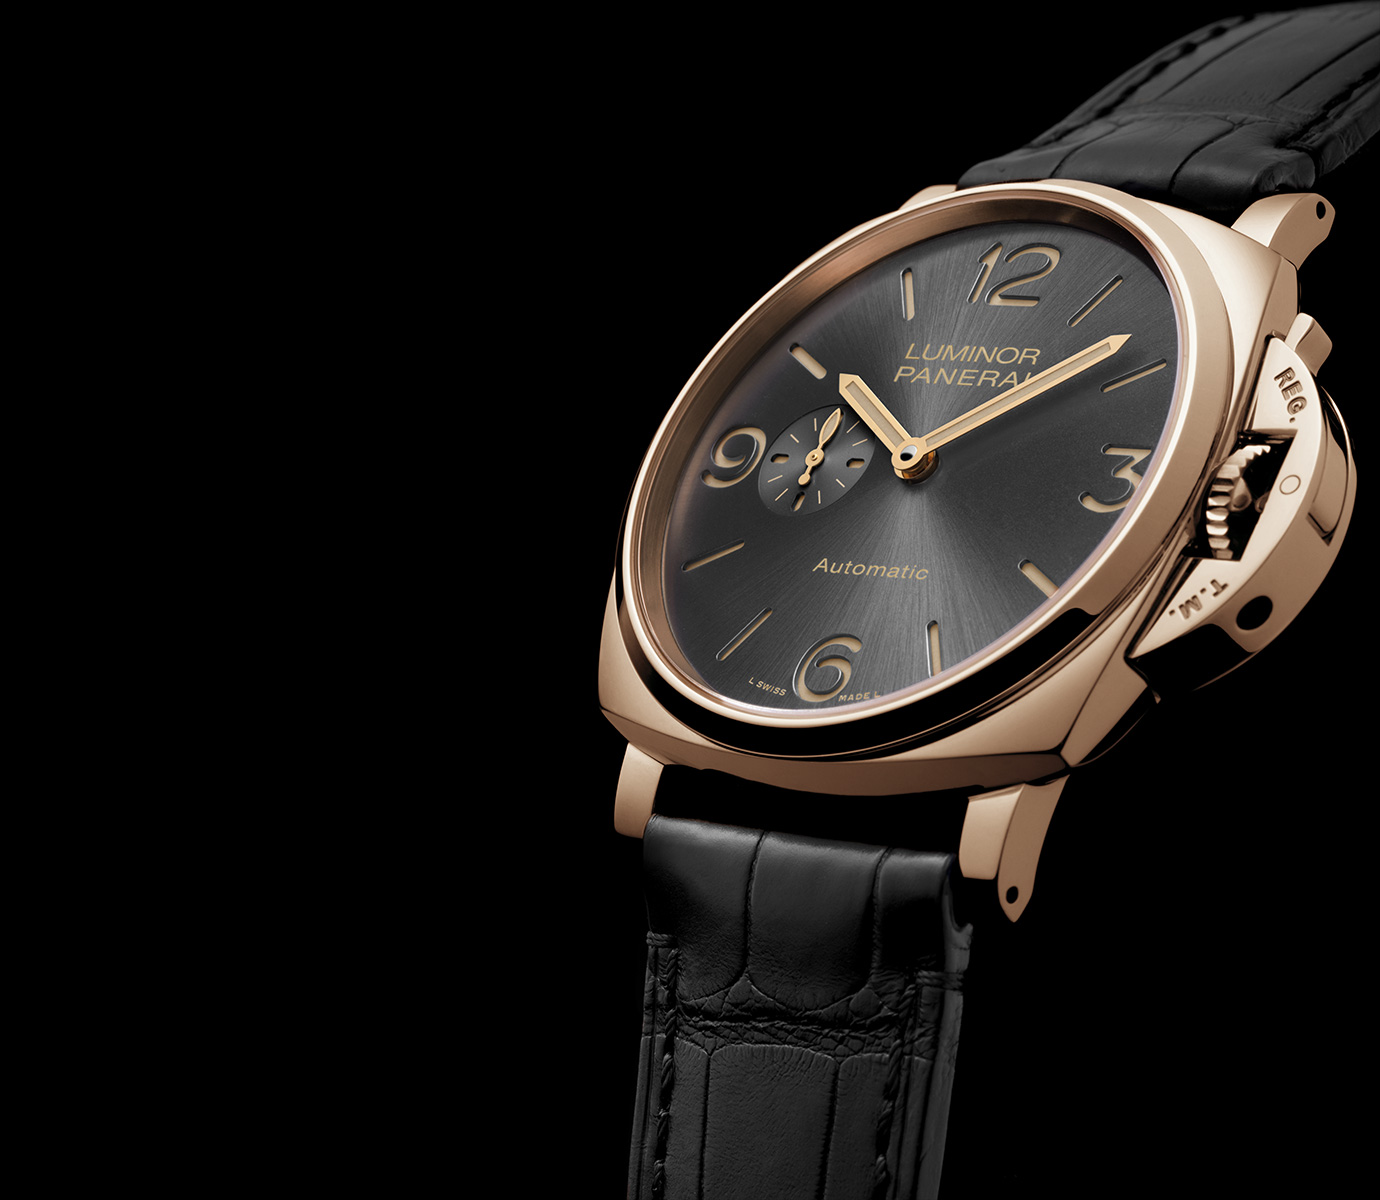 Panerai-Luminor-Due-3-Days-Automatic-Oro-Rosso-45-mm-3-Horasyminutos